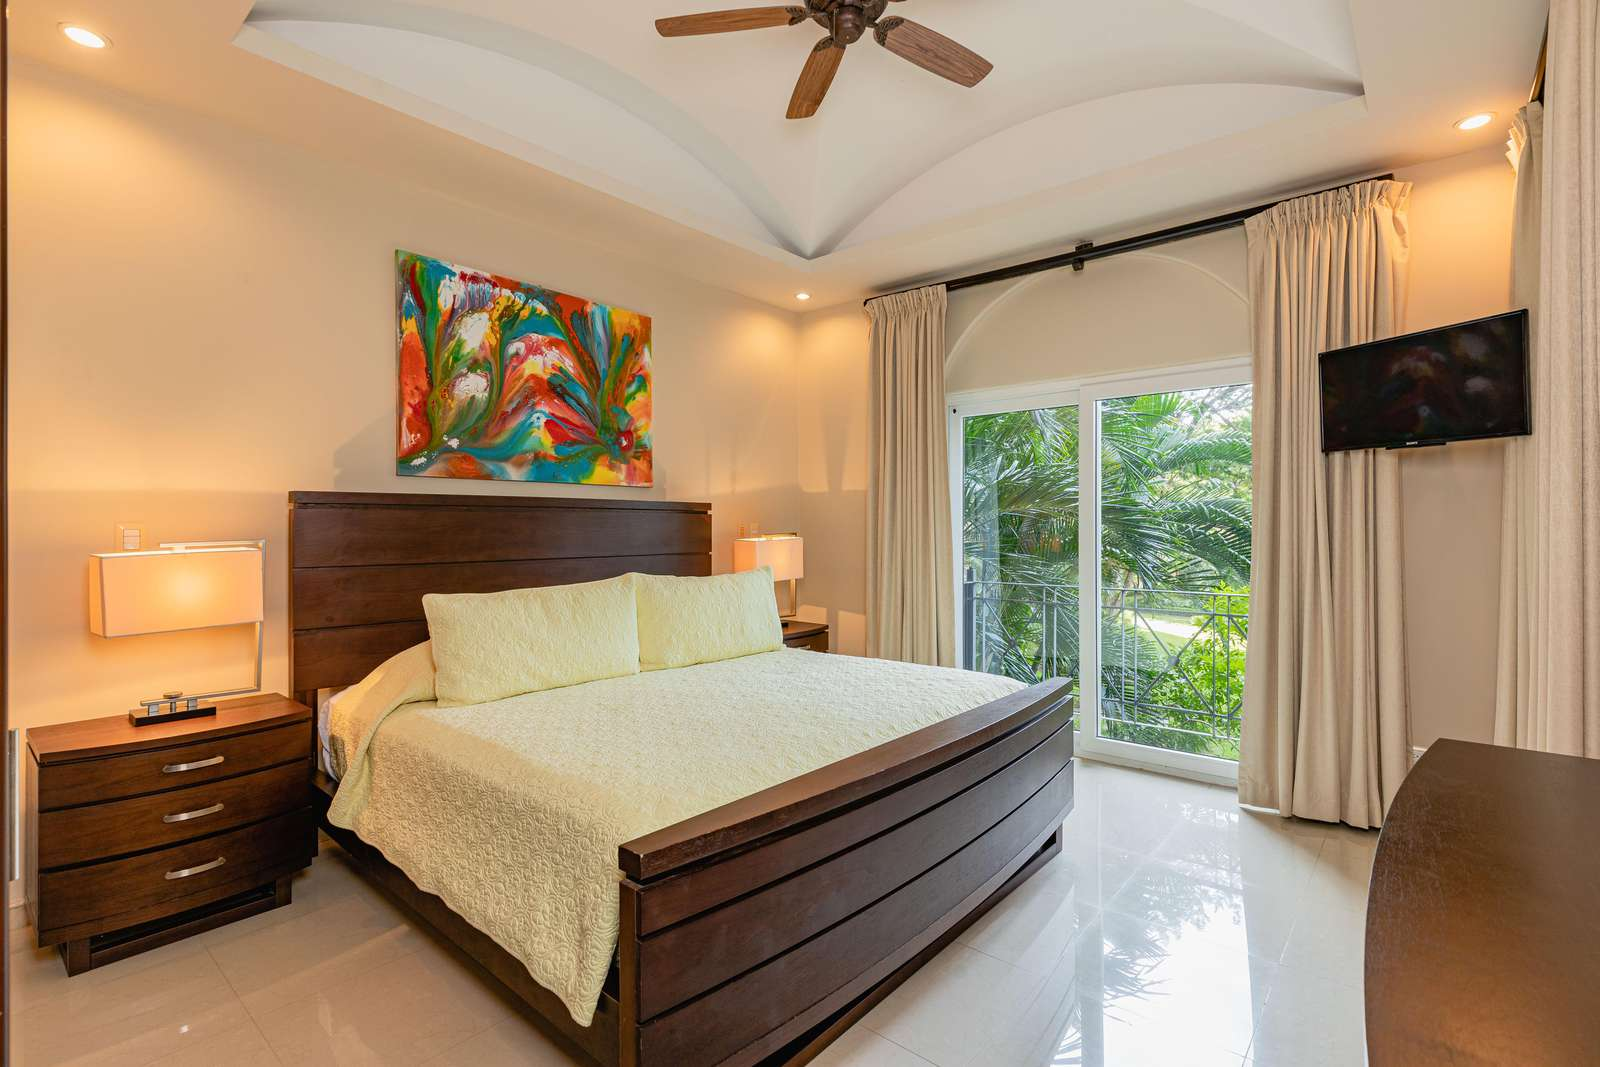 Master bedroom, king bed, private bathroom